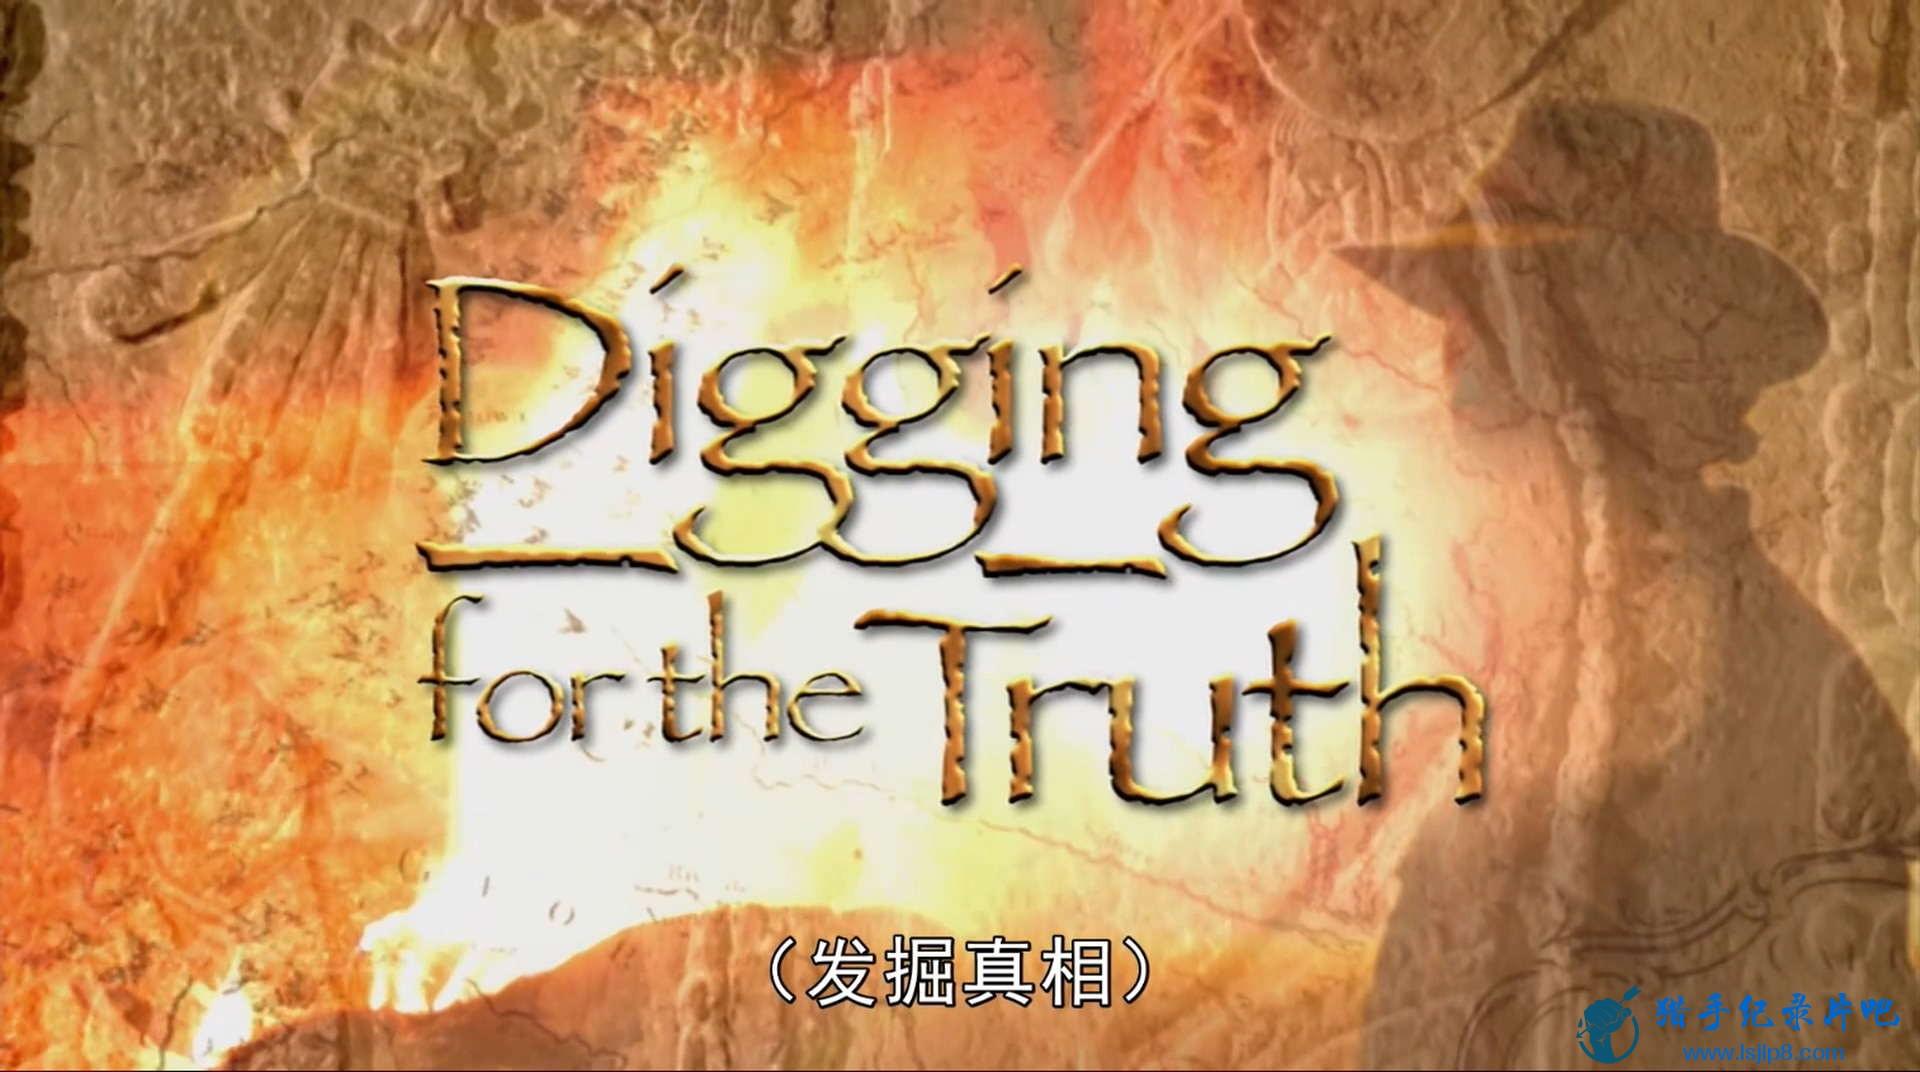 Digging.For.The.Truth.E01.WEB-DL.1080p.H264.AAC-HDCTV.mp4_20200613_112525.203_看图王.jpg